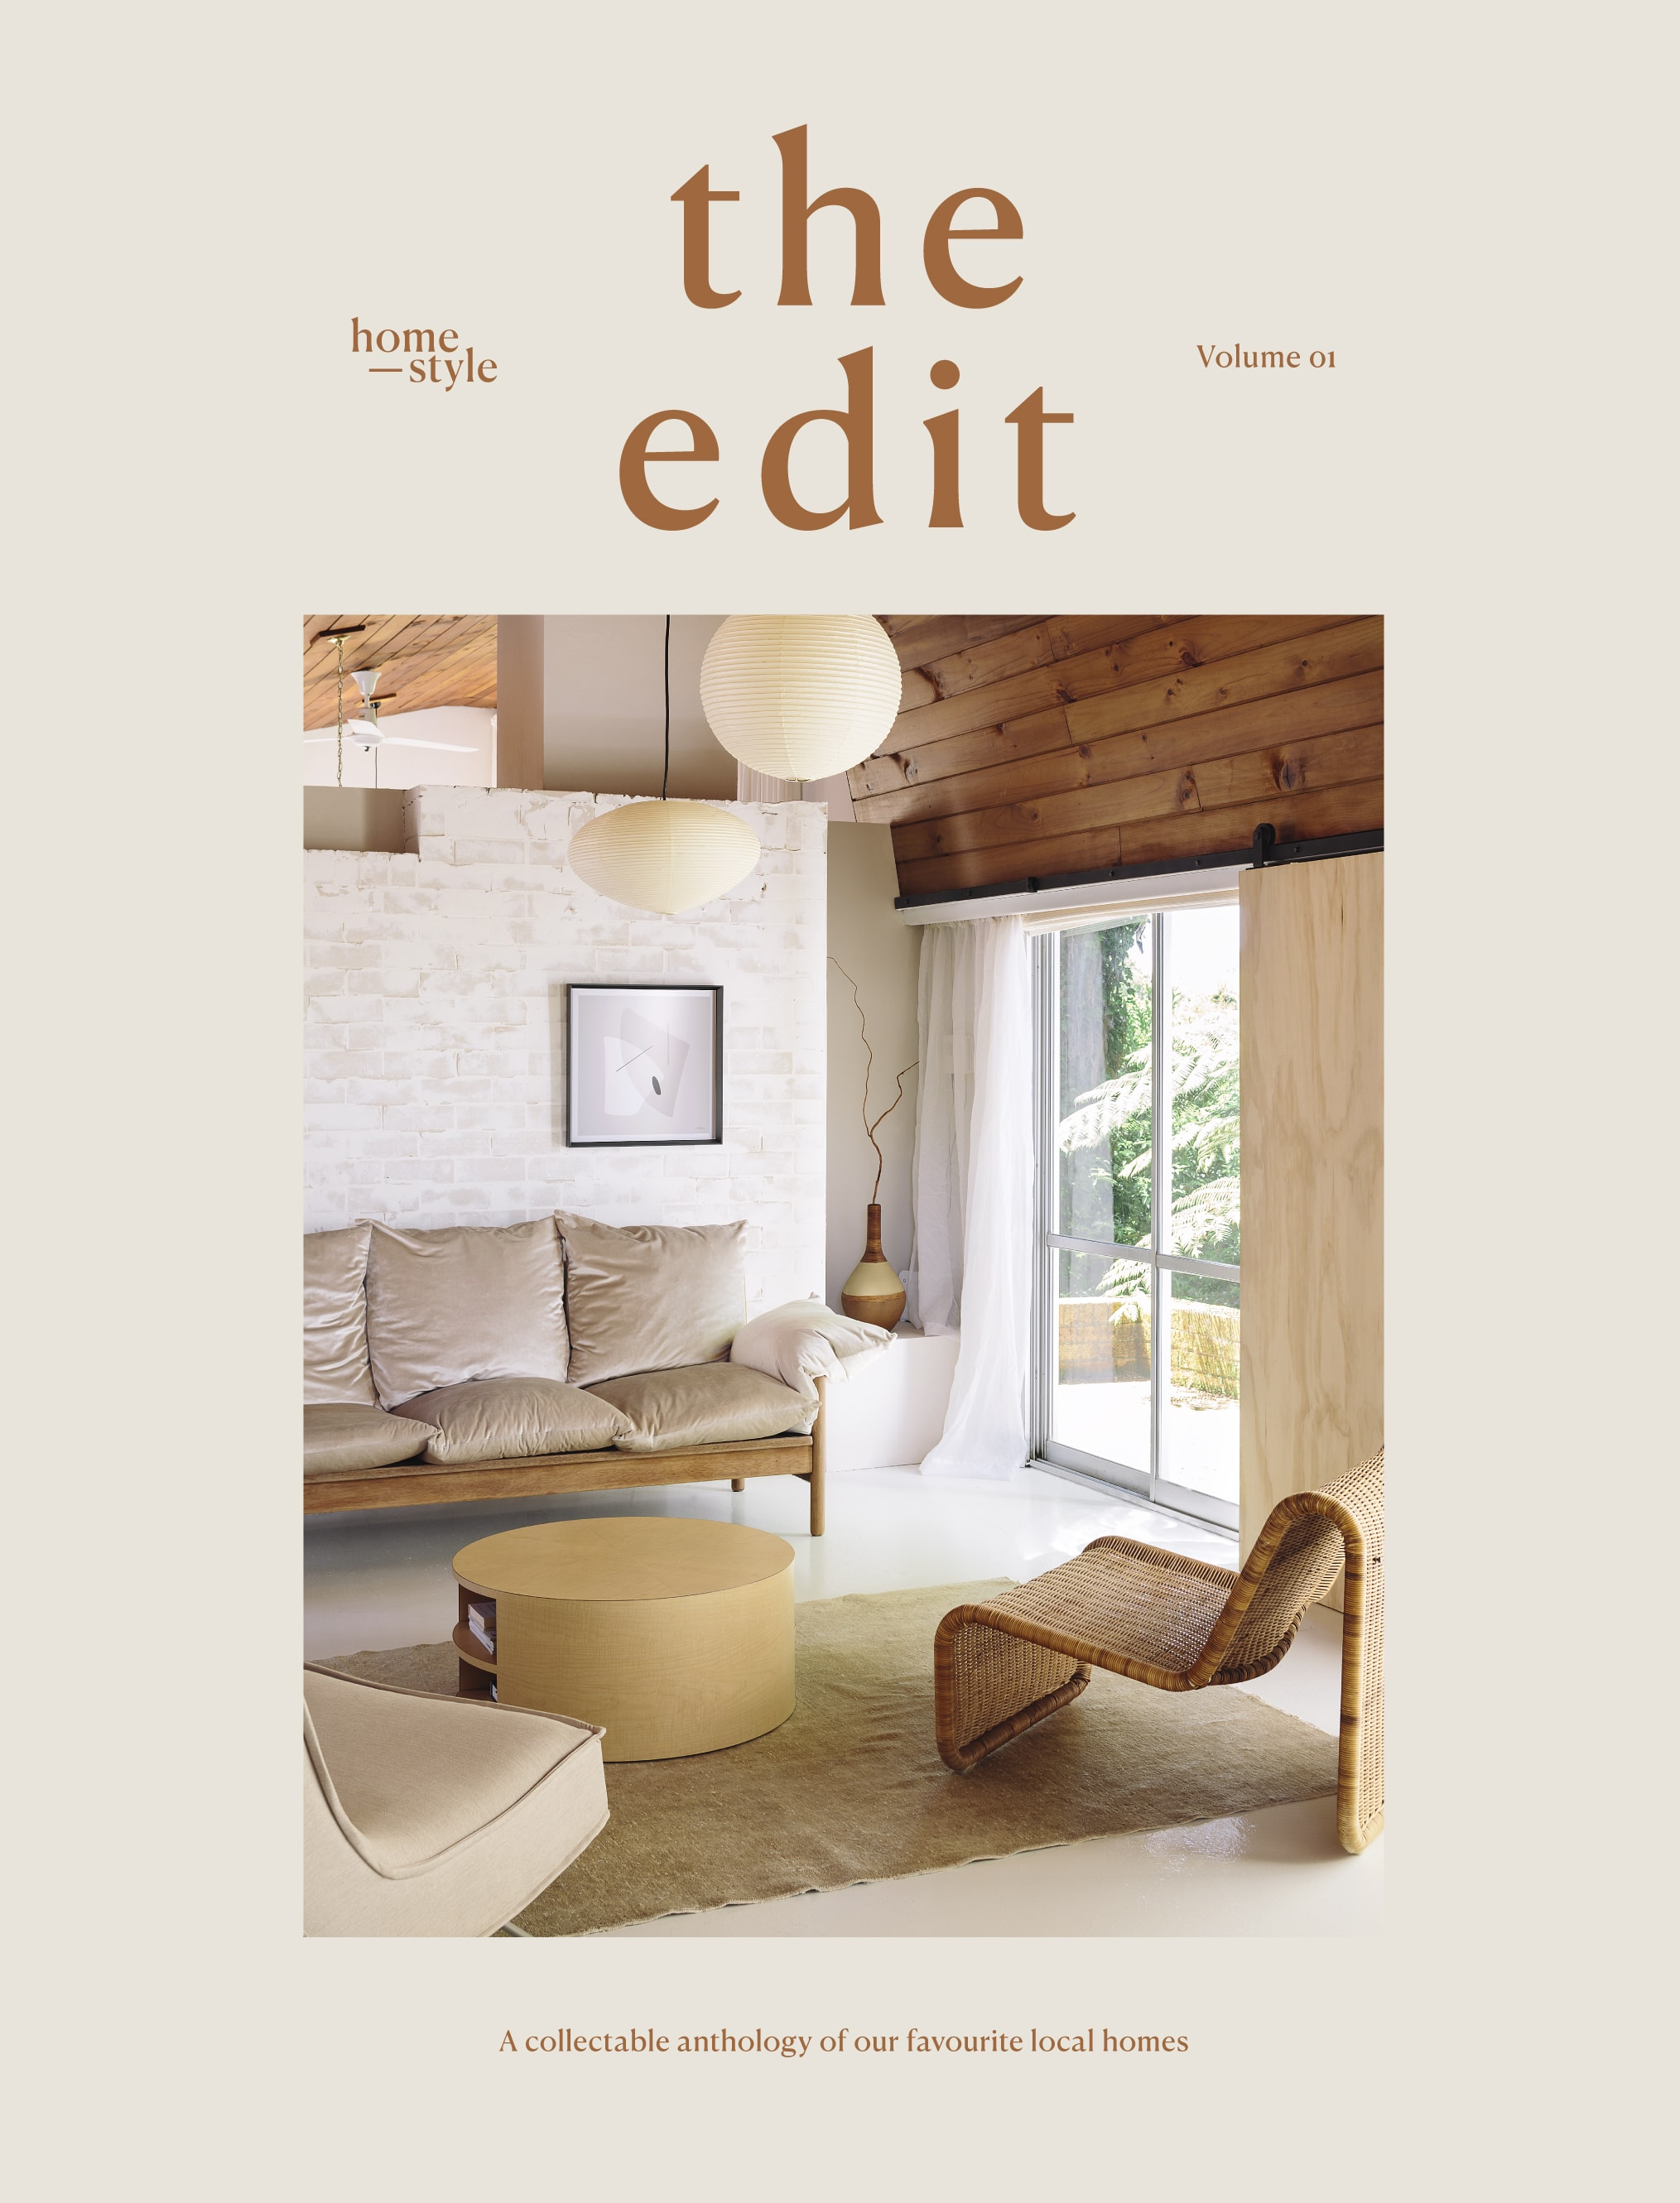 Homestyle's The Edit